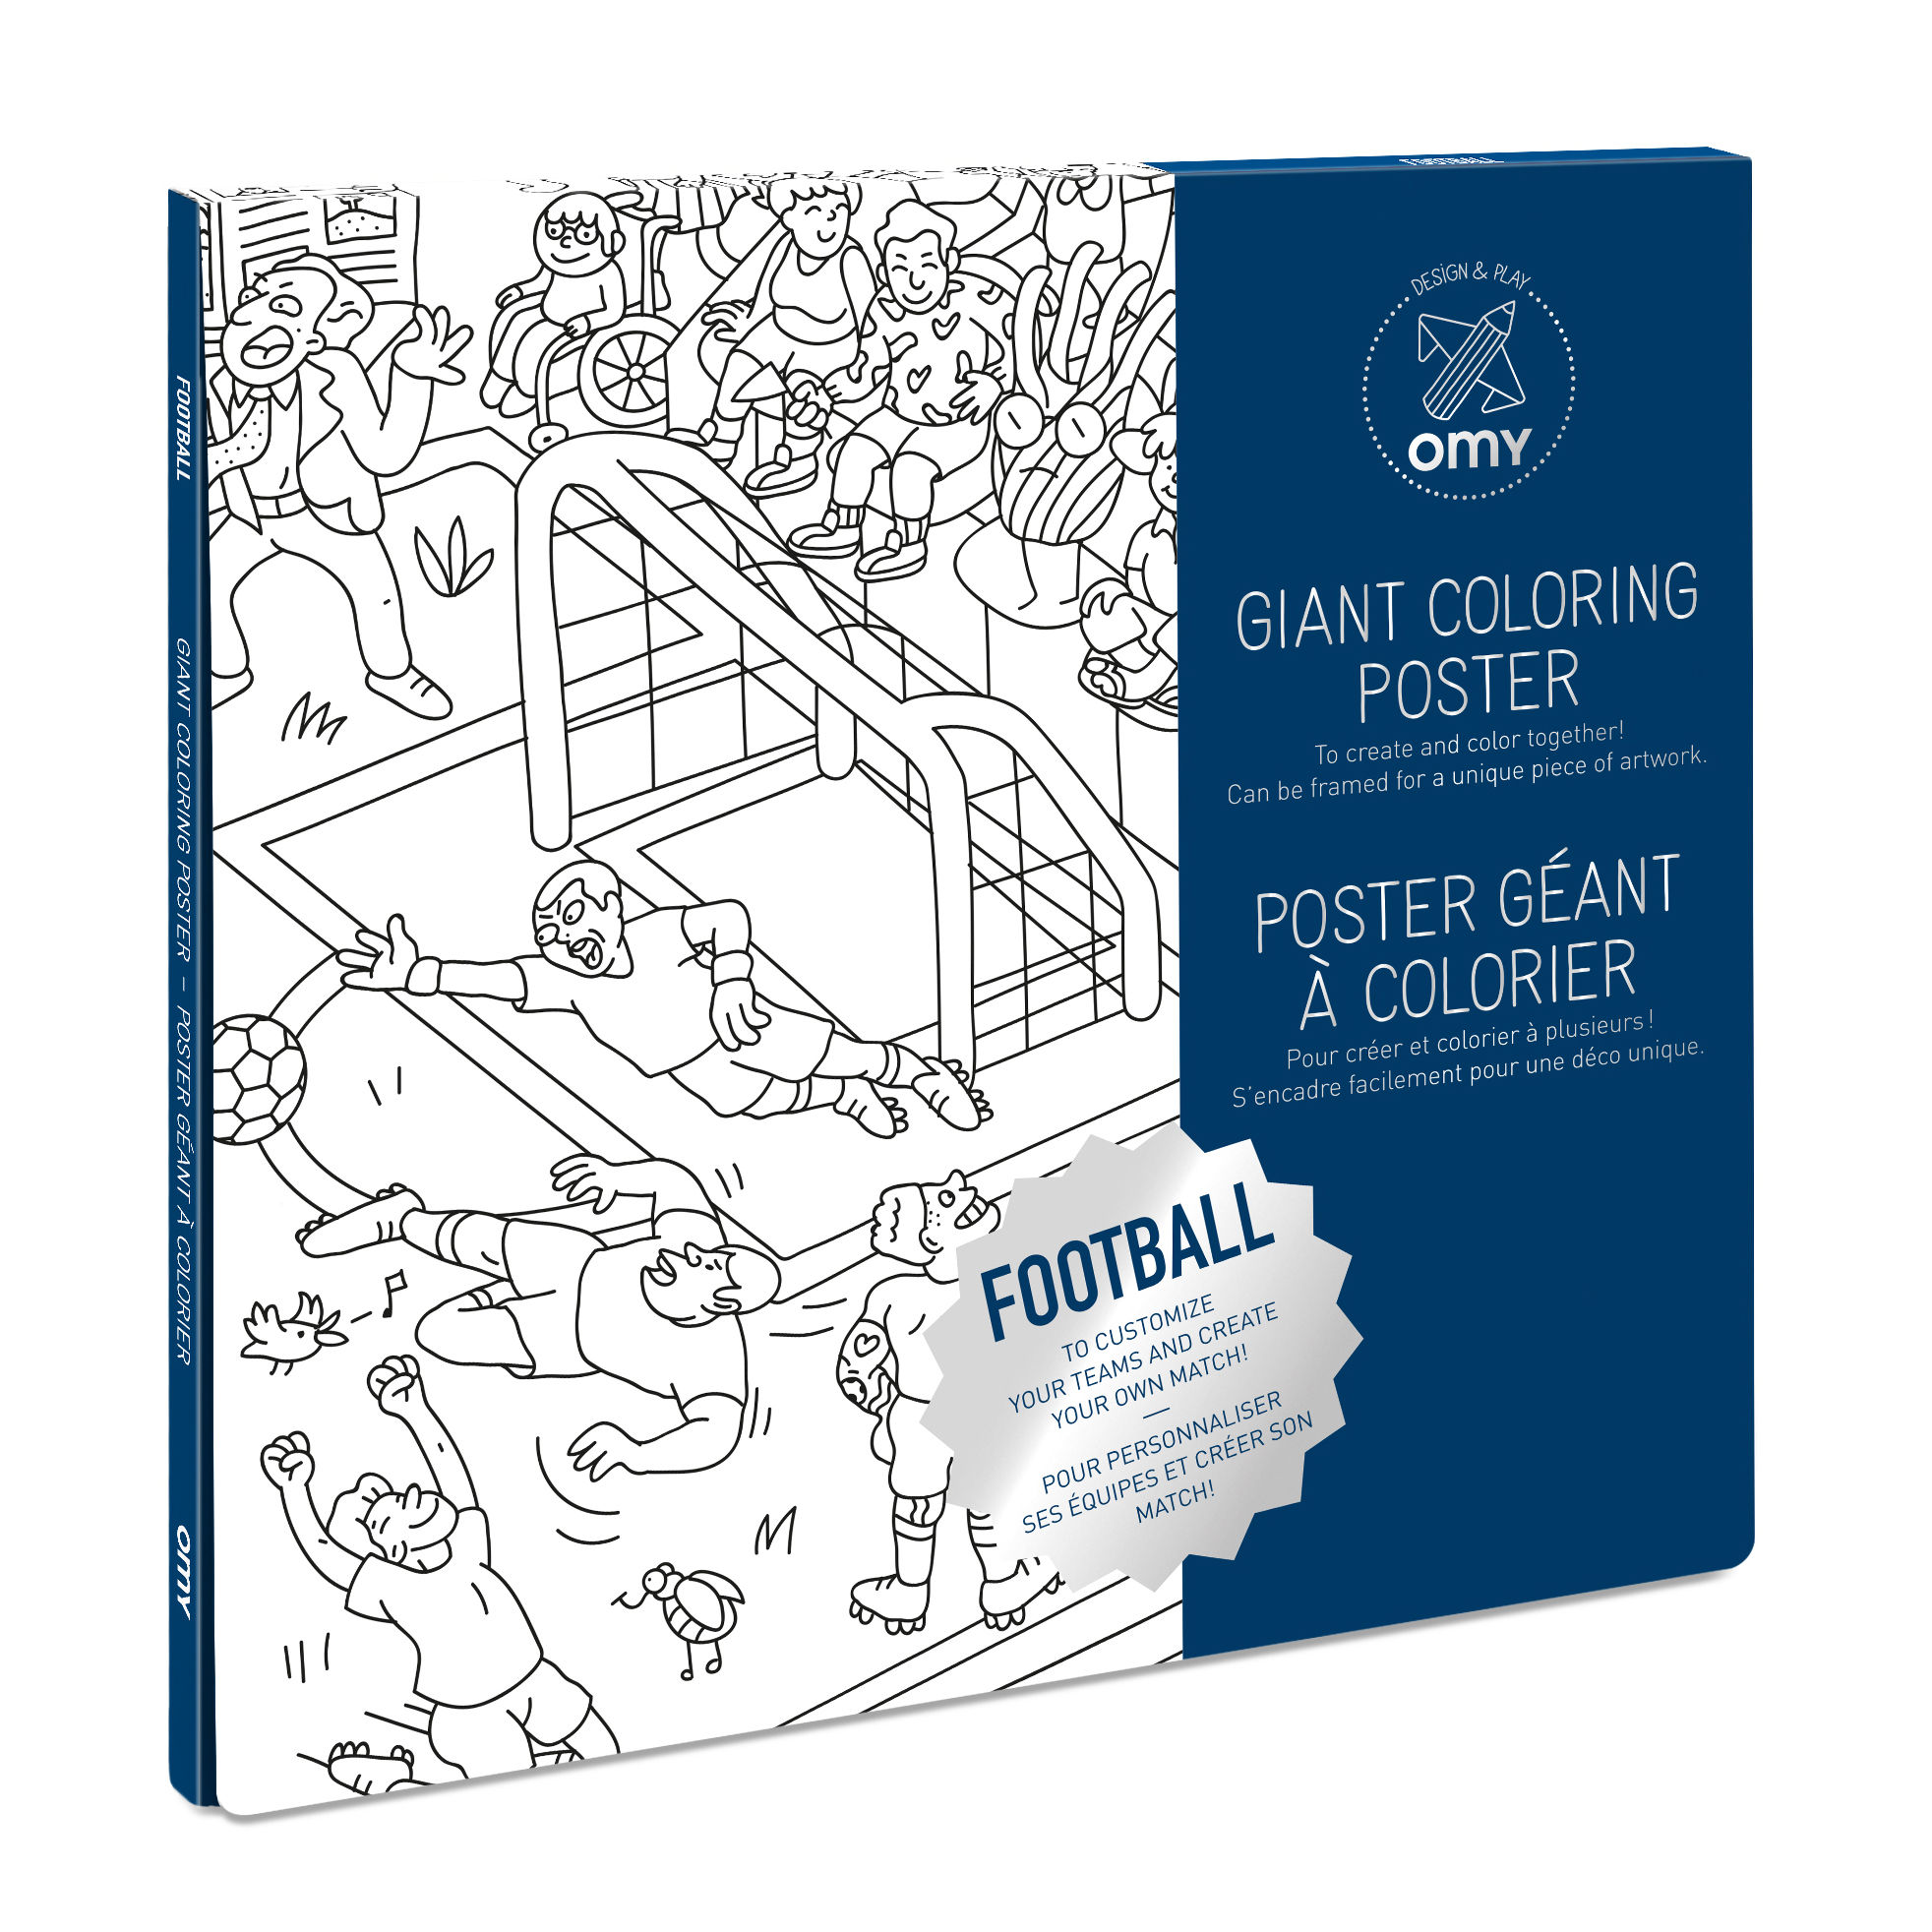 Decoration - Children's Home Accessories - Football Colouring poster - / 100 x 70 cm by OMY Design & Play - Football - Paper